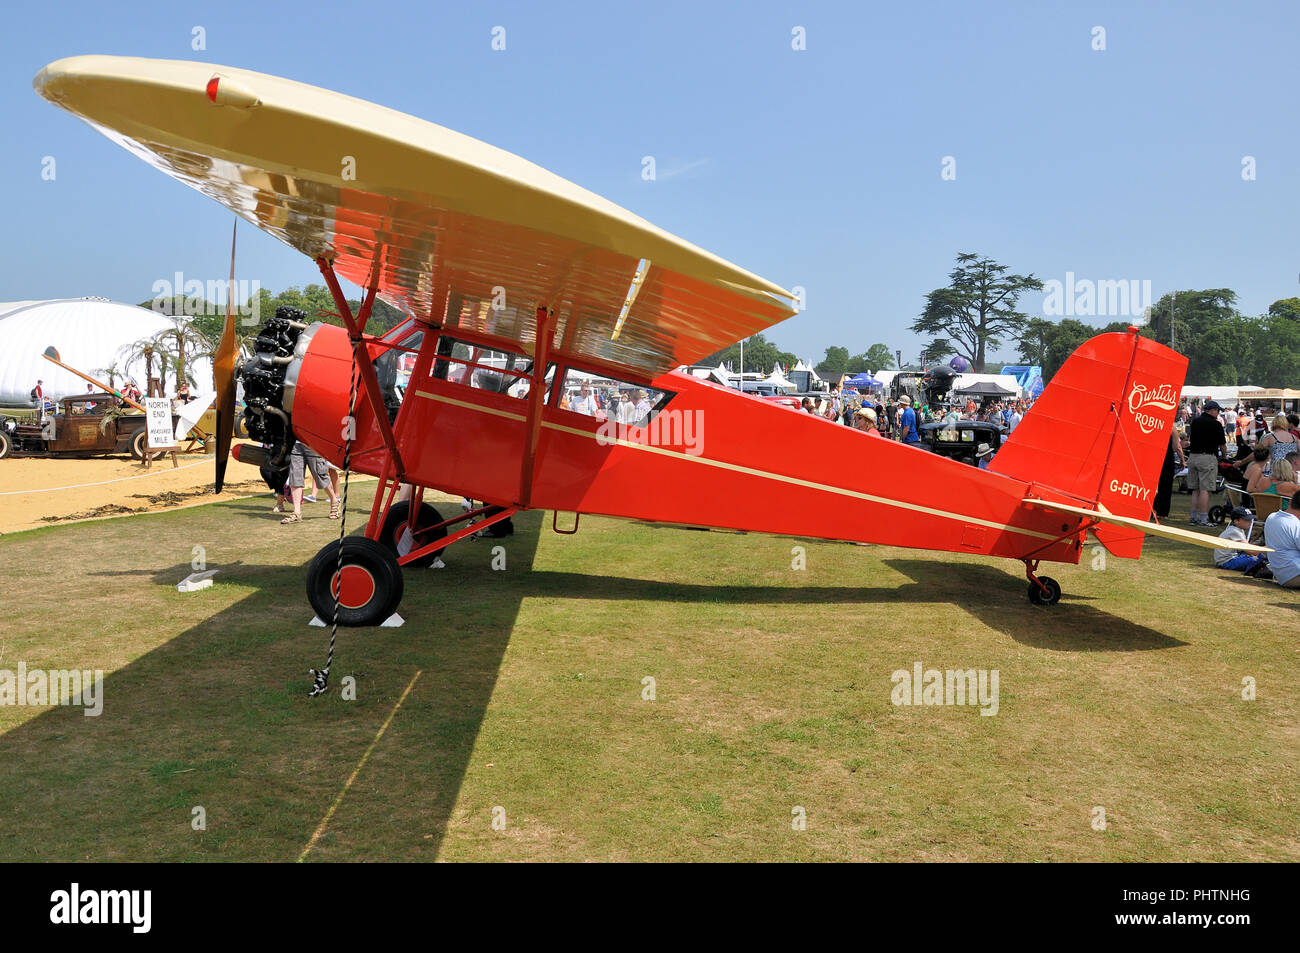 Curtiss Robin G-BTYY high-wing monoplane built by the Curtiss-Robertson Airplane Manufacturing Company. At Goodwood. Owner Russell Hatton - Stock Image